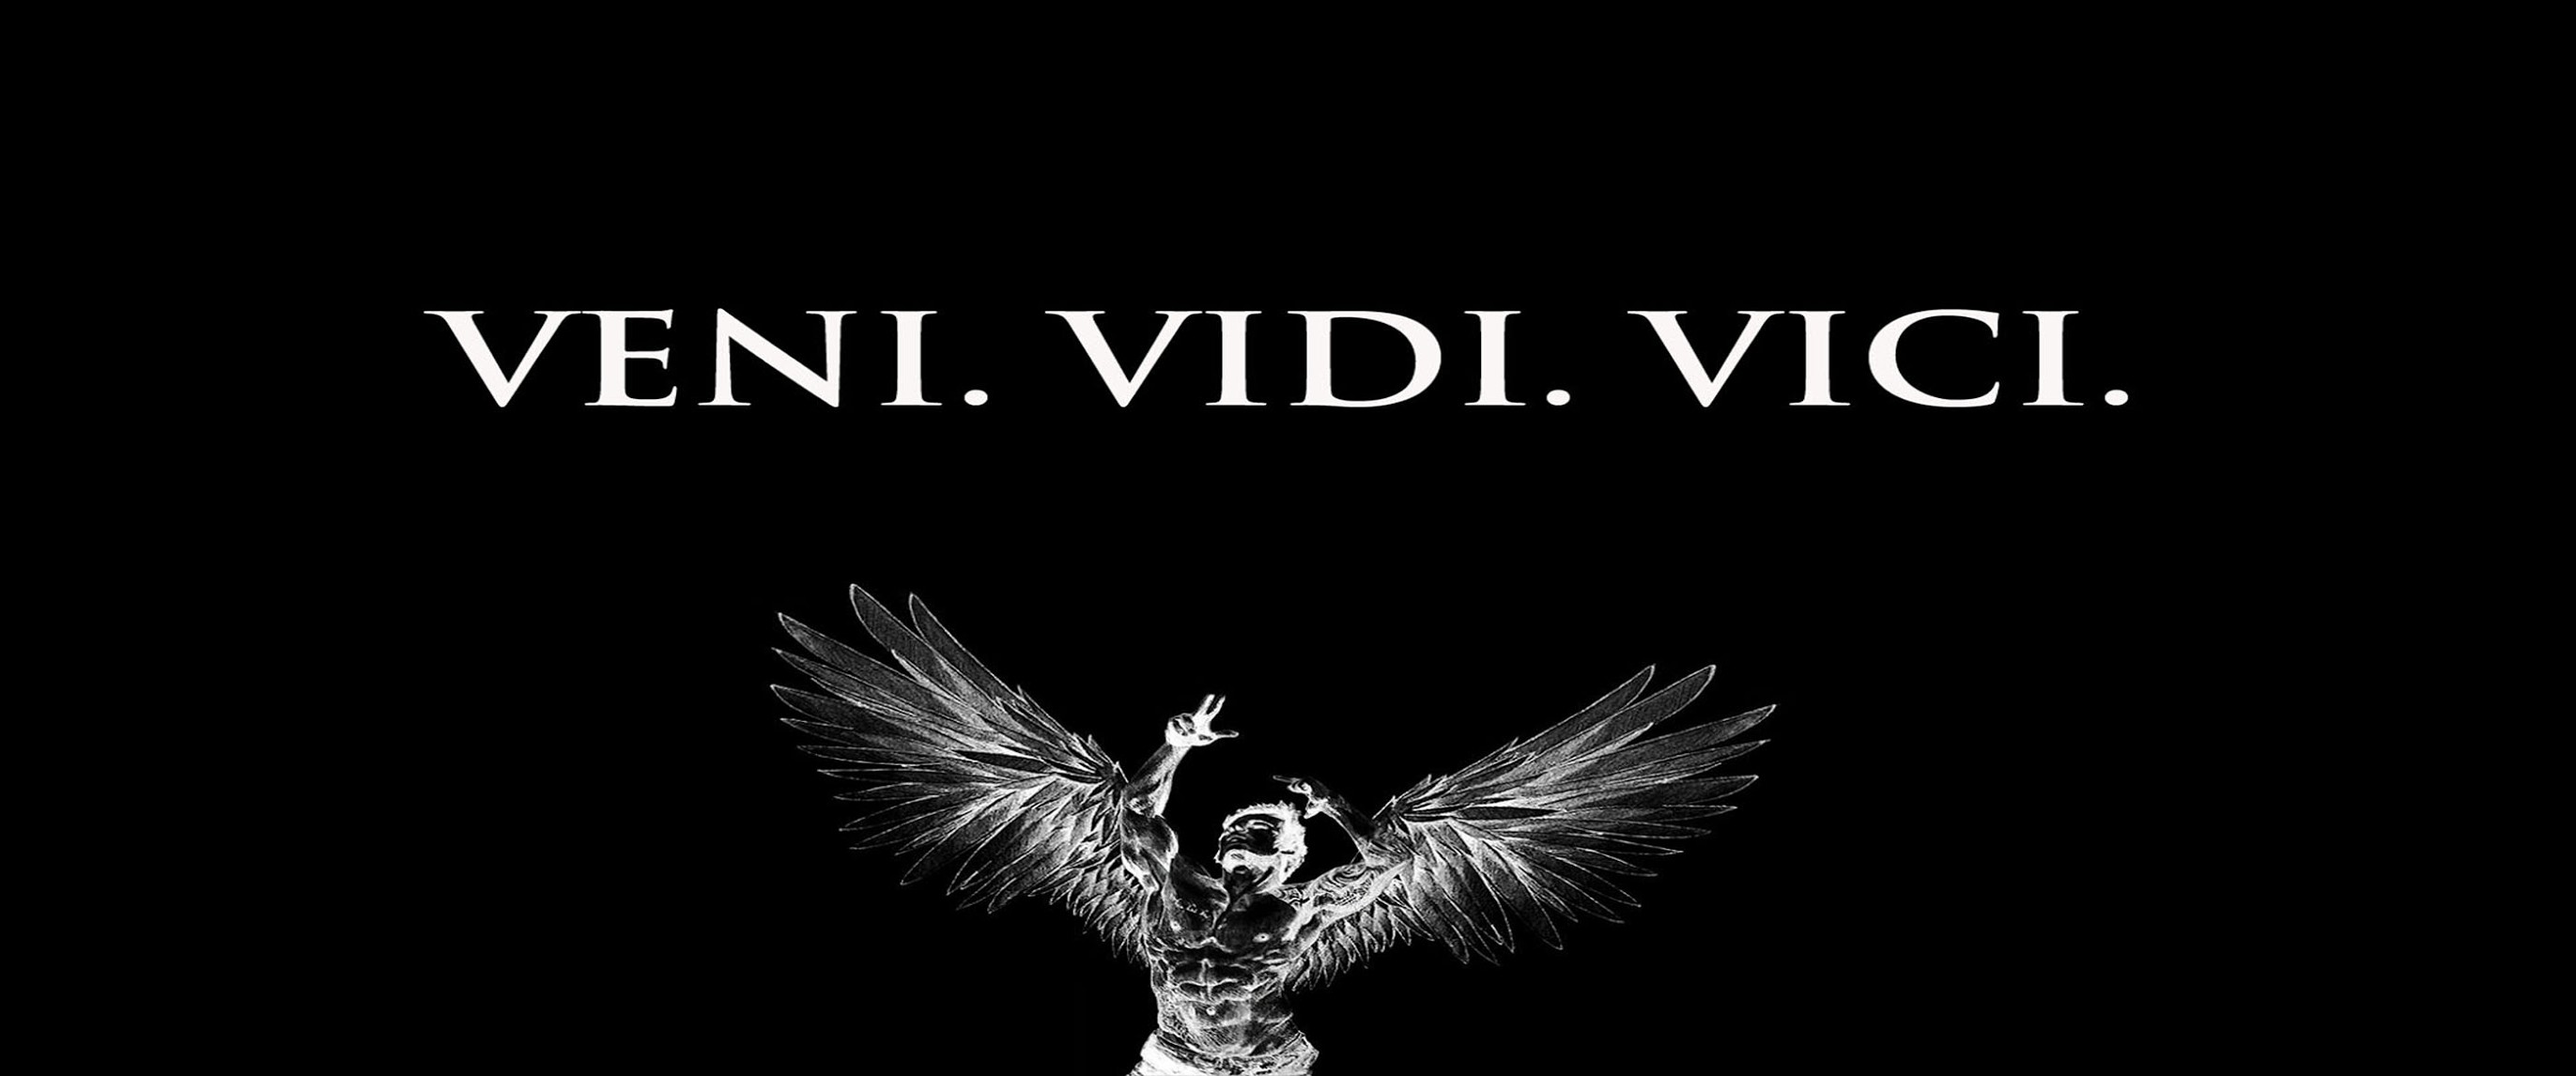 Veni Vidi Vici Iphone Wallpaper | www.imgkid.com - The ... Zyzz Wallpaper Iphone 5